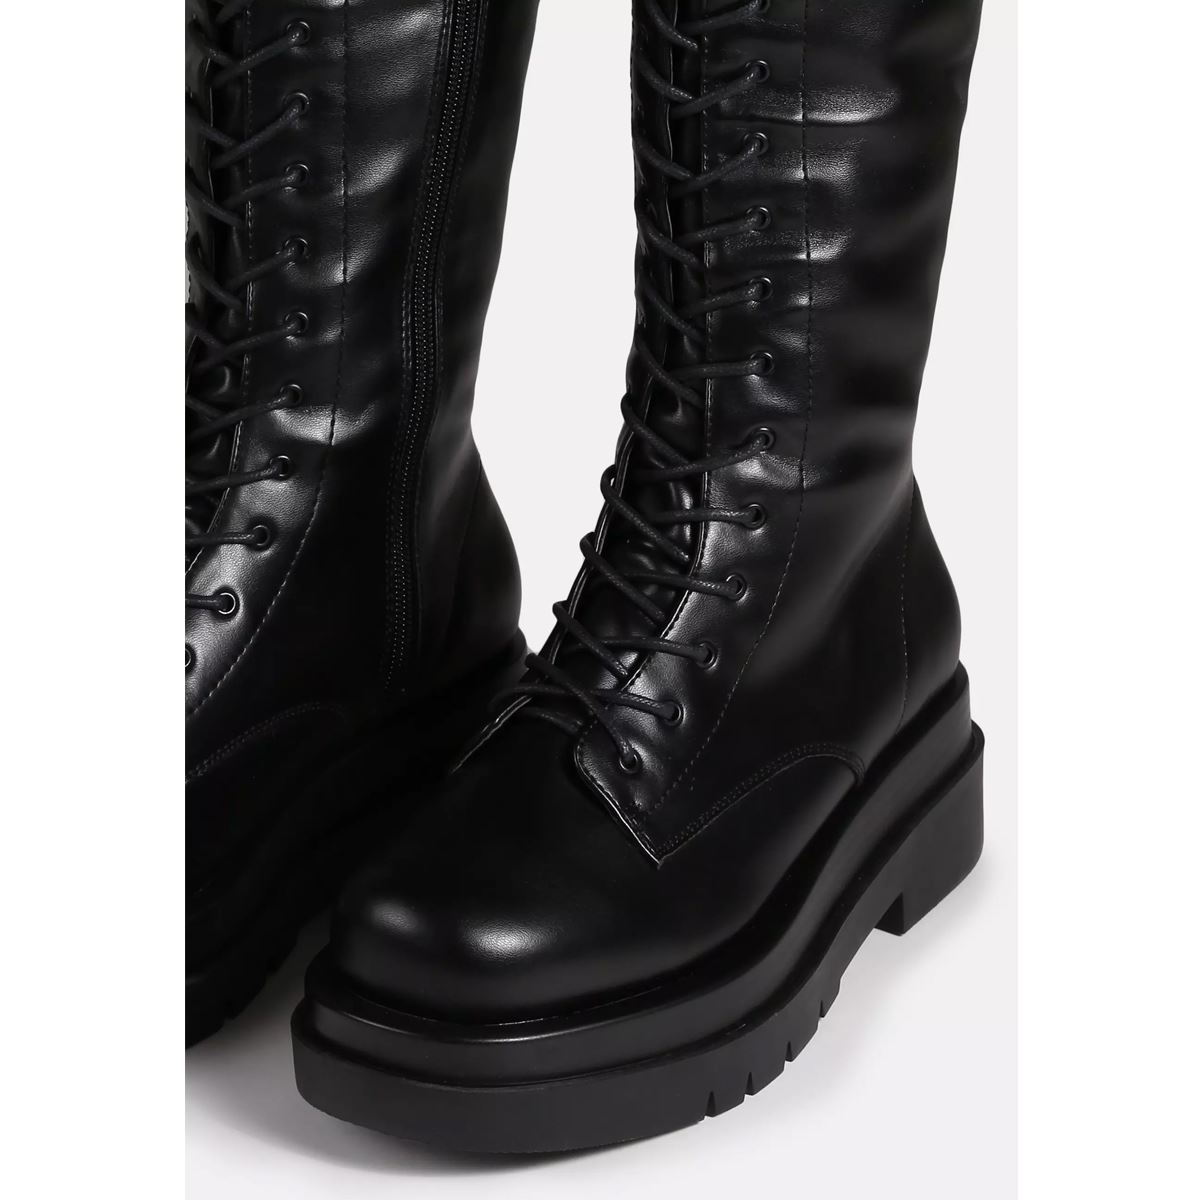 thumbnail 6 - Womens-Ladies-Lace-Up-Knee-Boots-Calf-High-Shoe-Grunge-Chunky-Sole-Size-Zip-New